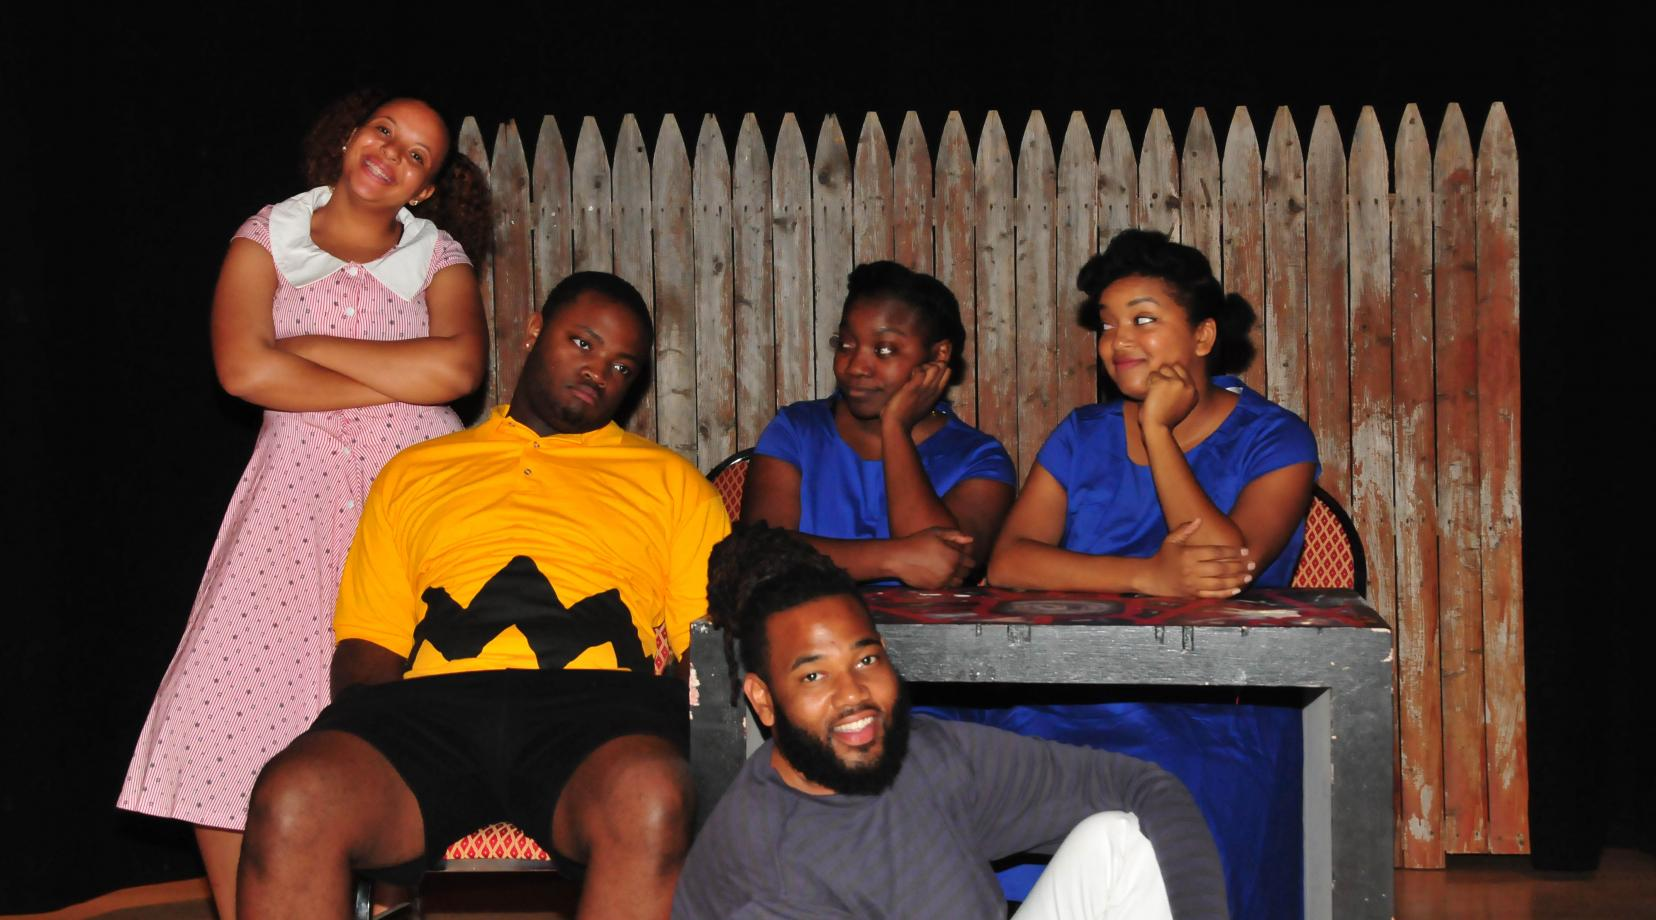 <p>(L-r) Sháe Ross (as Sally), Anthony McIver (Charlie Brown), Jahselan White (Lucy understudy), Marquita Richardson (Lucy) and Tyrone J. Ashley Jr. (Schroeder).</p>